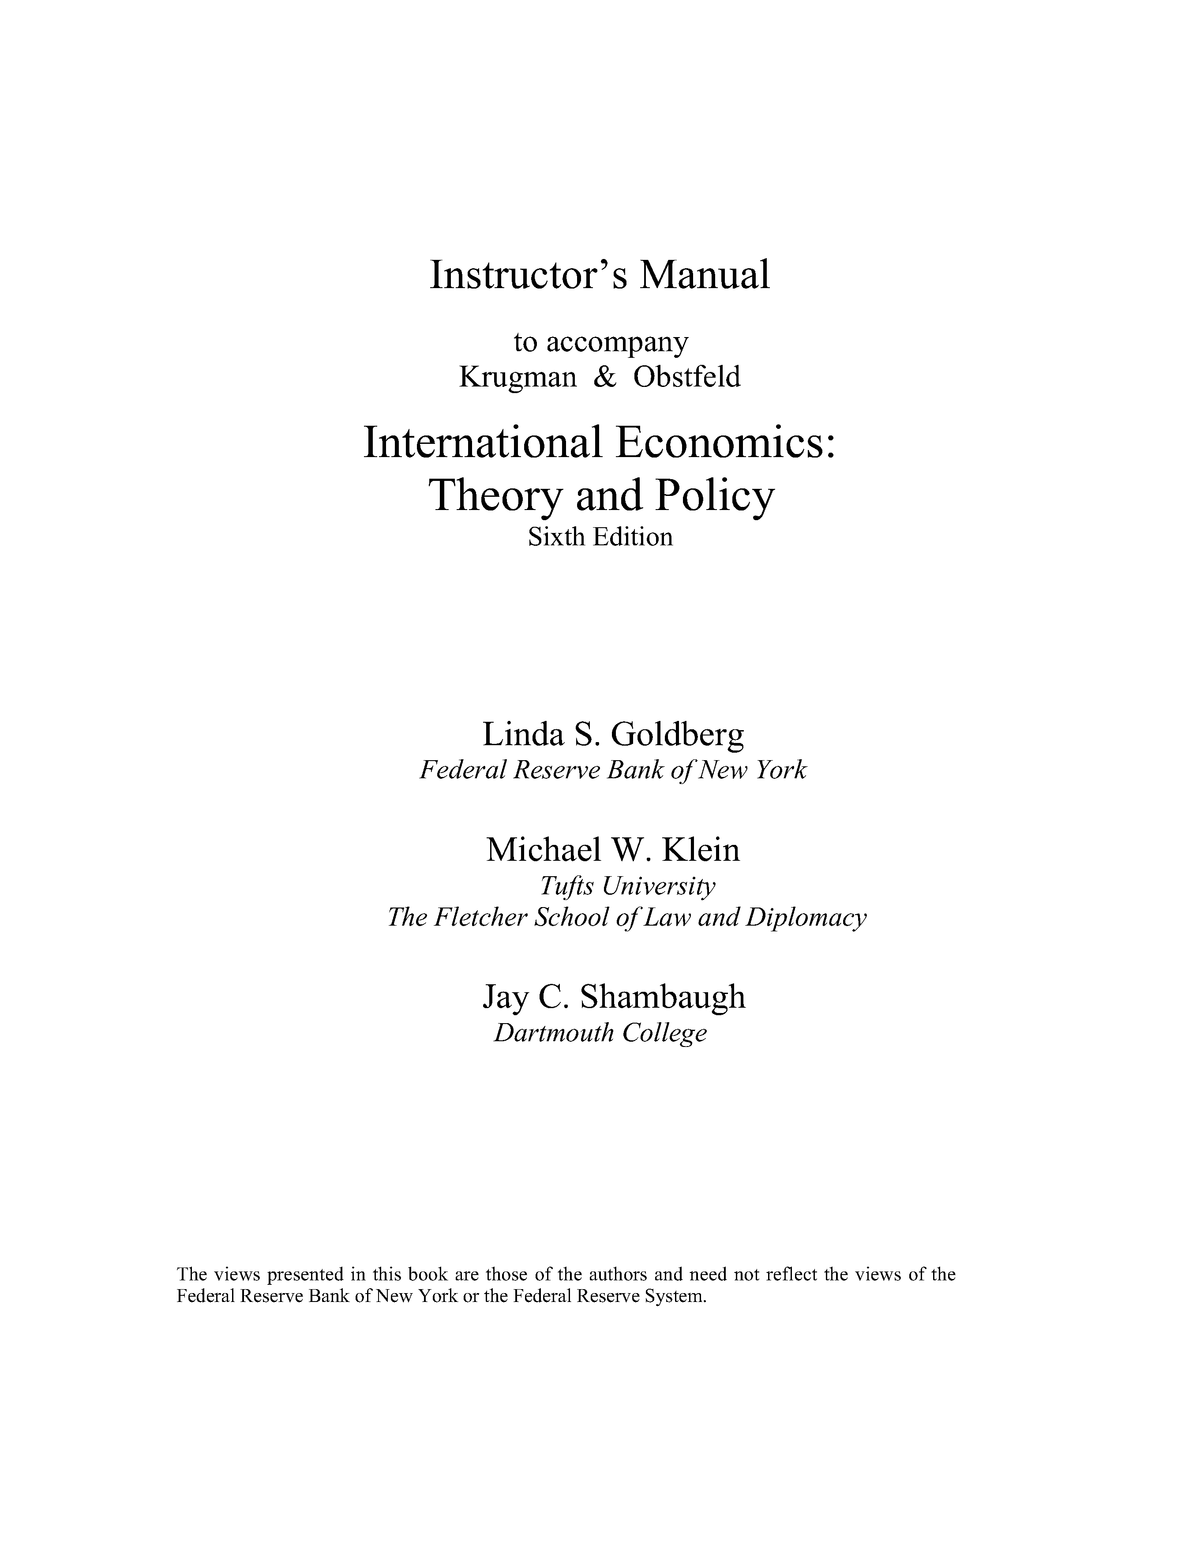 International Economics Krugman and Obstfeld solution manual - StuDocu